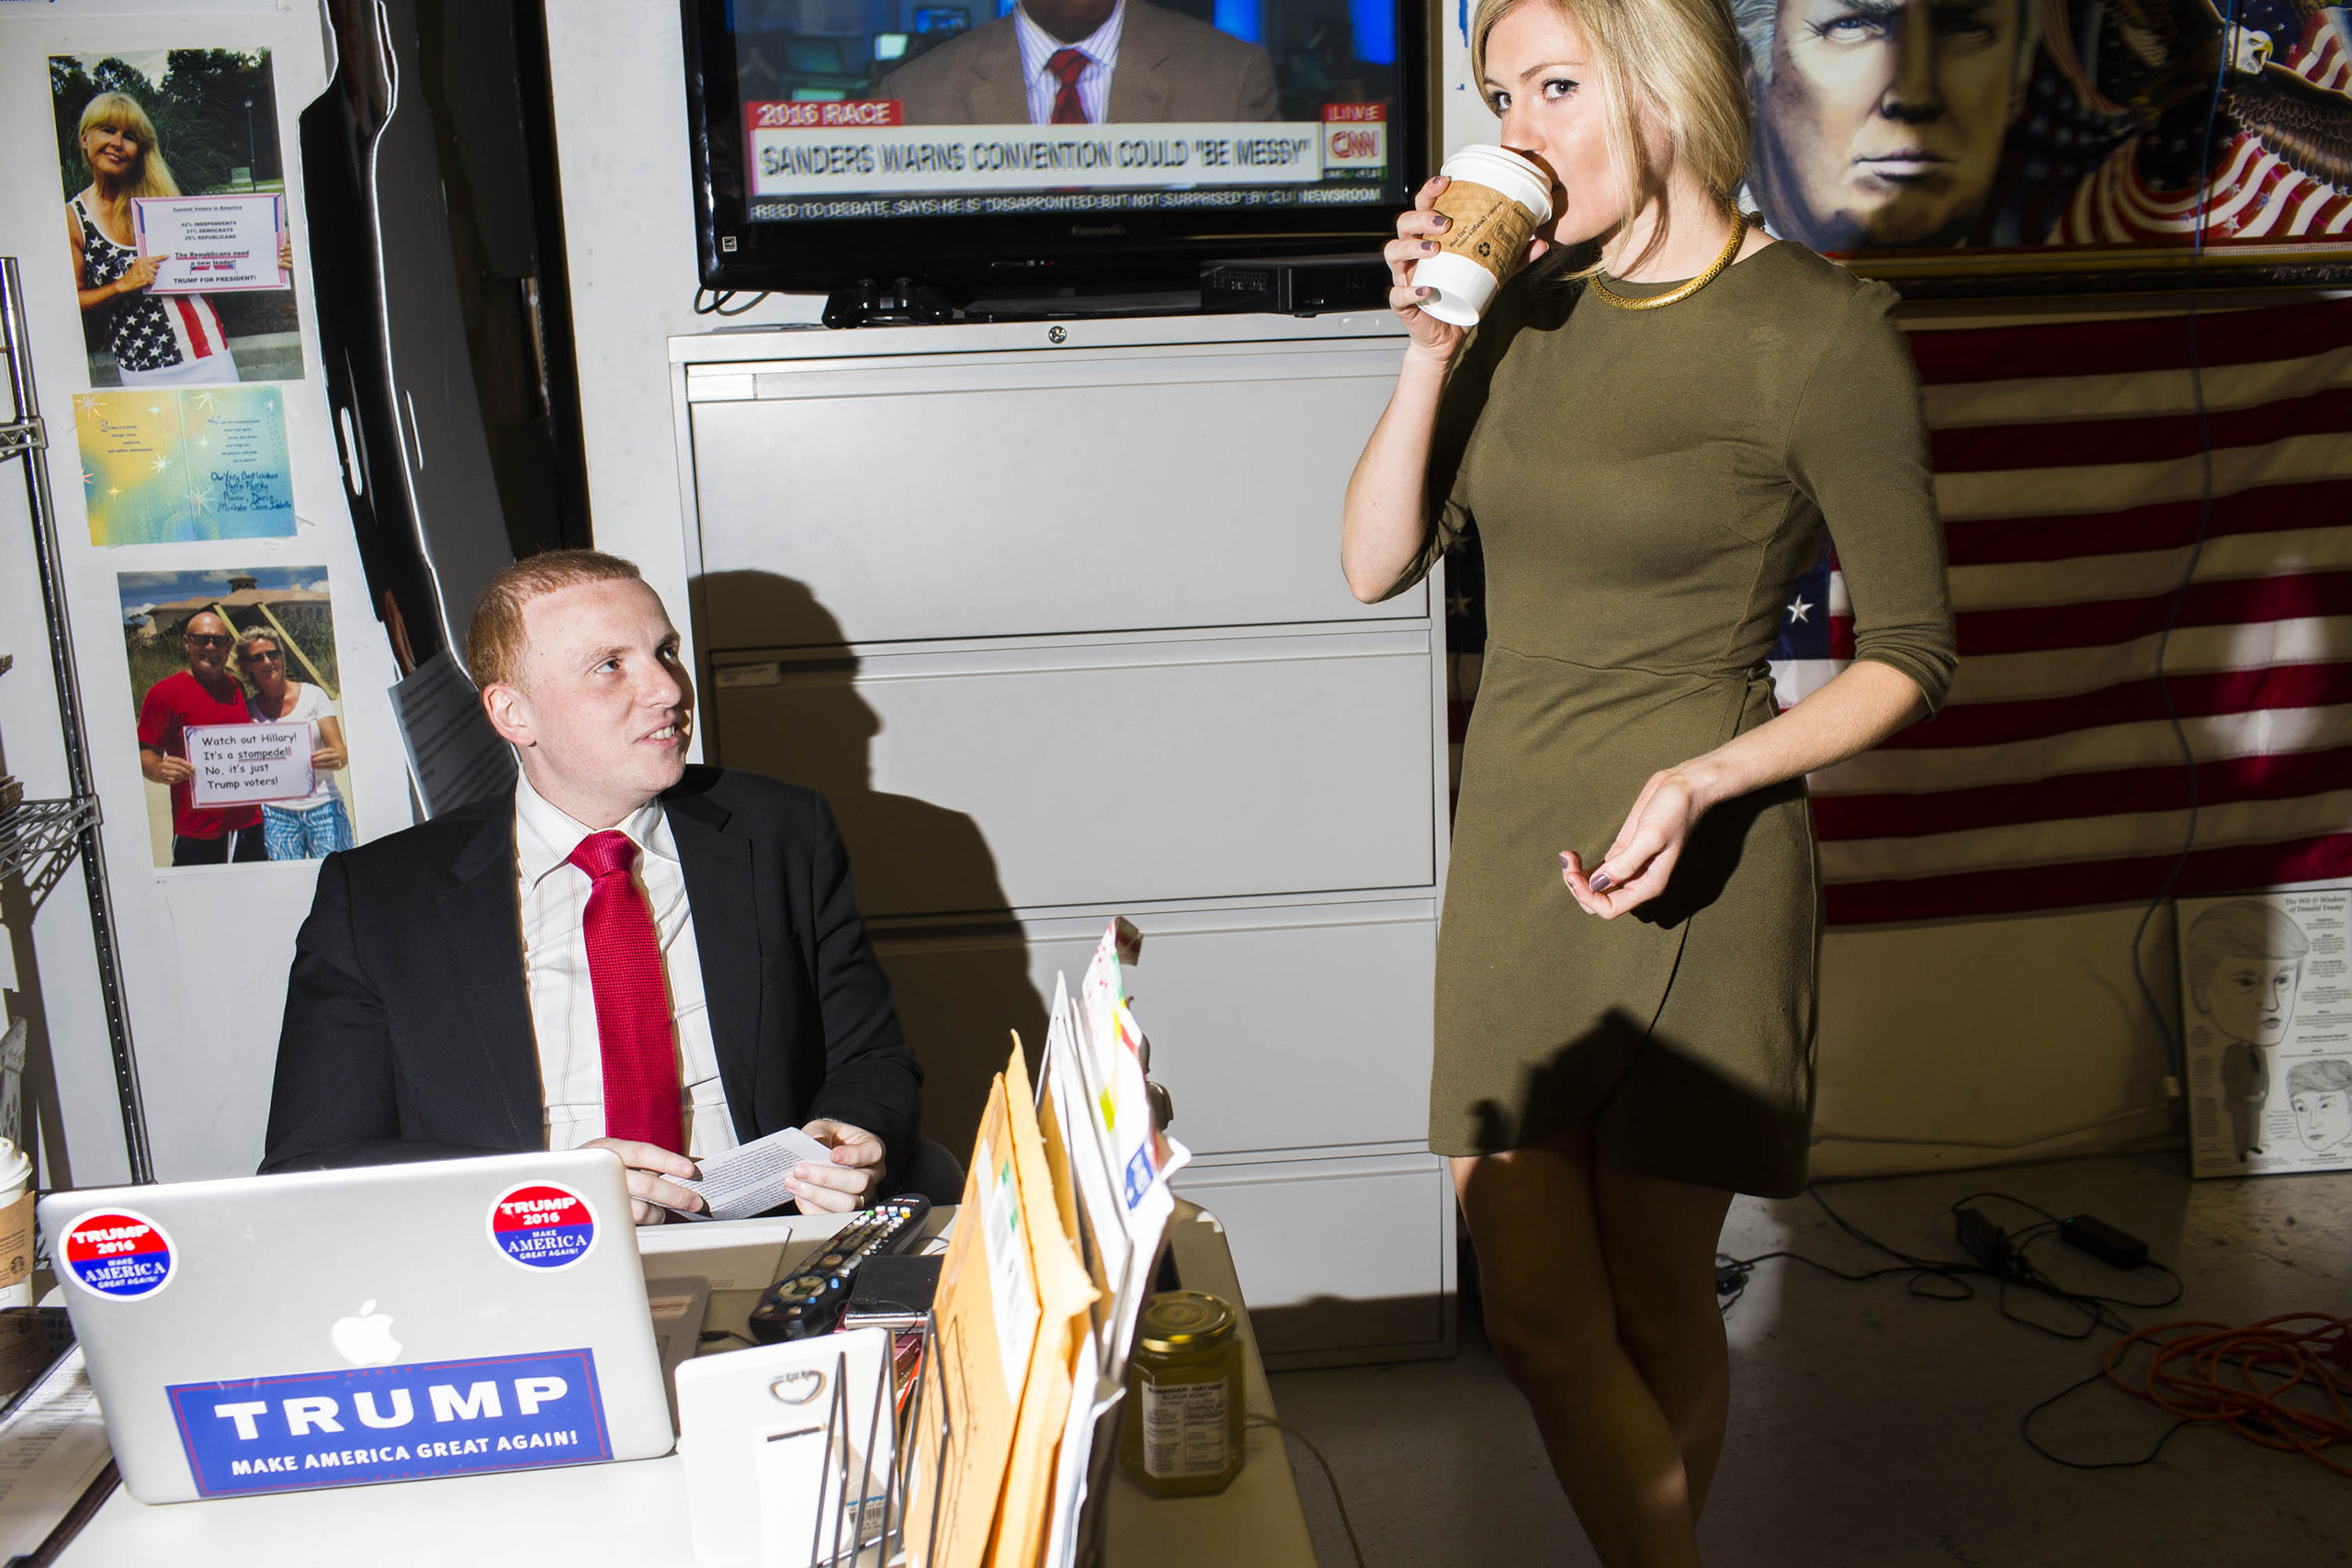 Staff members inside the campaign headquarters of Donald Trump on May 24, 2016, in Trump Tower in New York City.